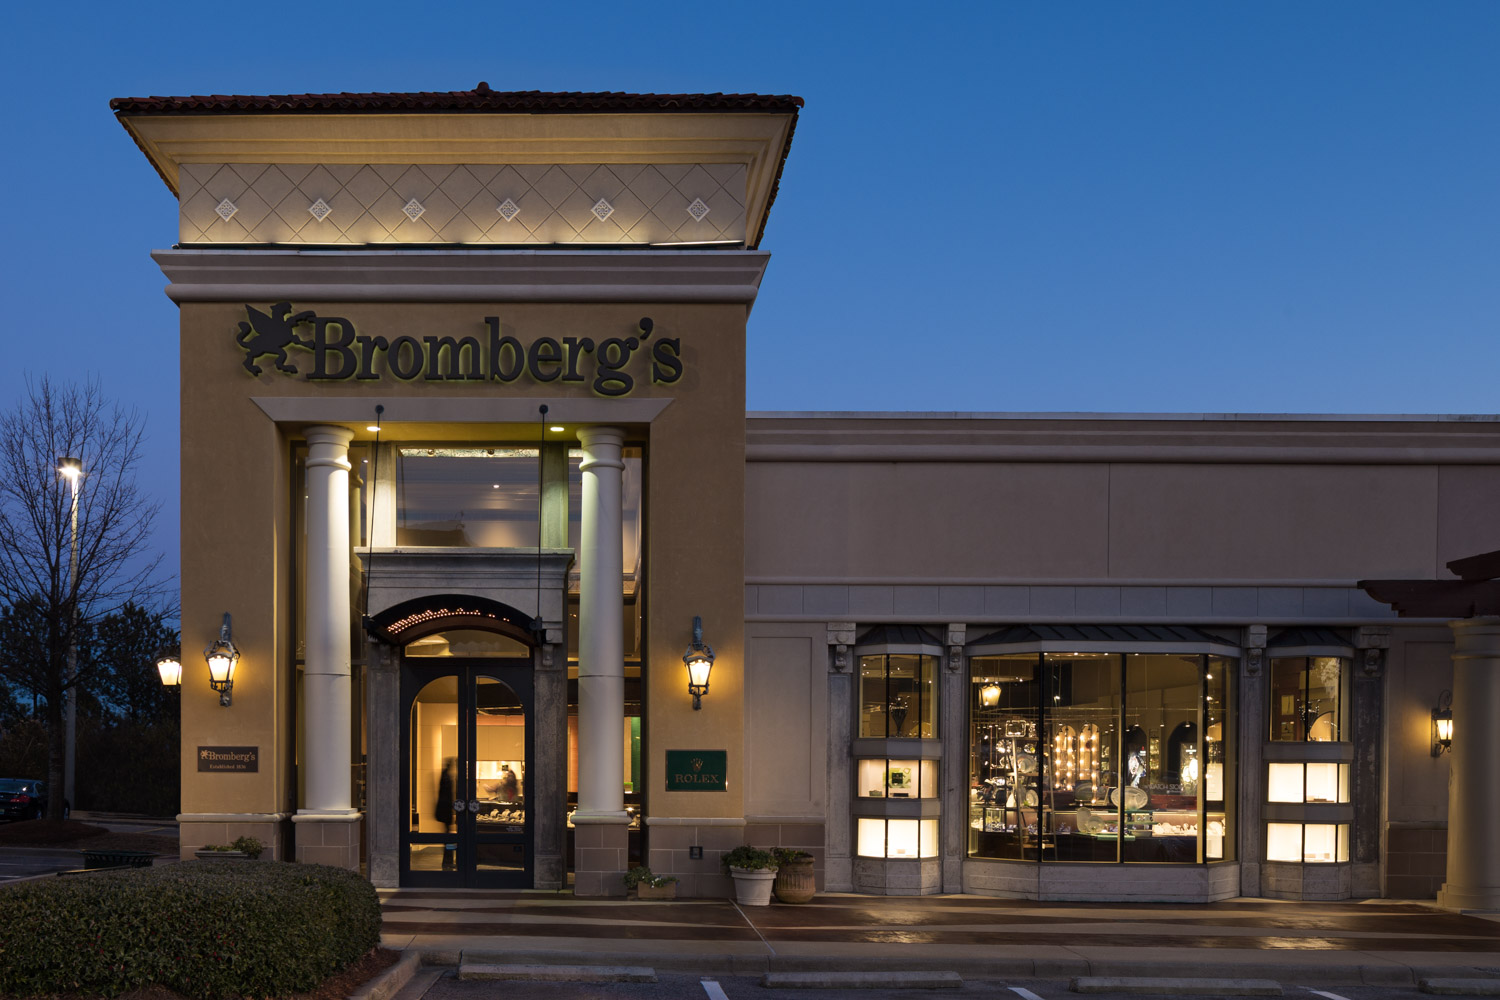 Brombergs - Birmingham AL Jewelry Store - Google Virtual Tour2525.jpg